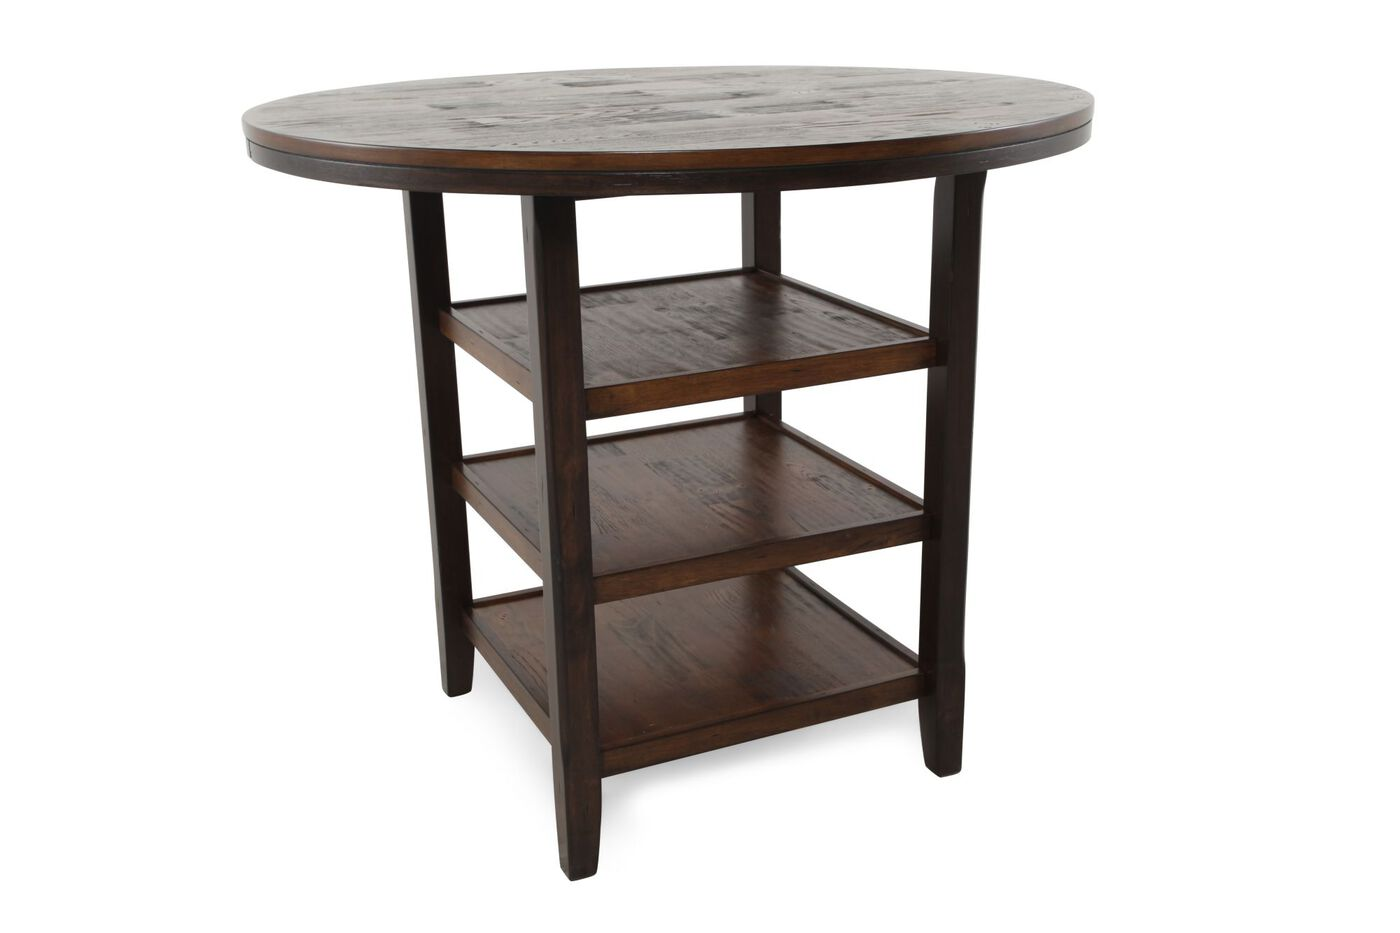 46 tri shelf counter table in dark brown mathis for Dining table shelf